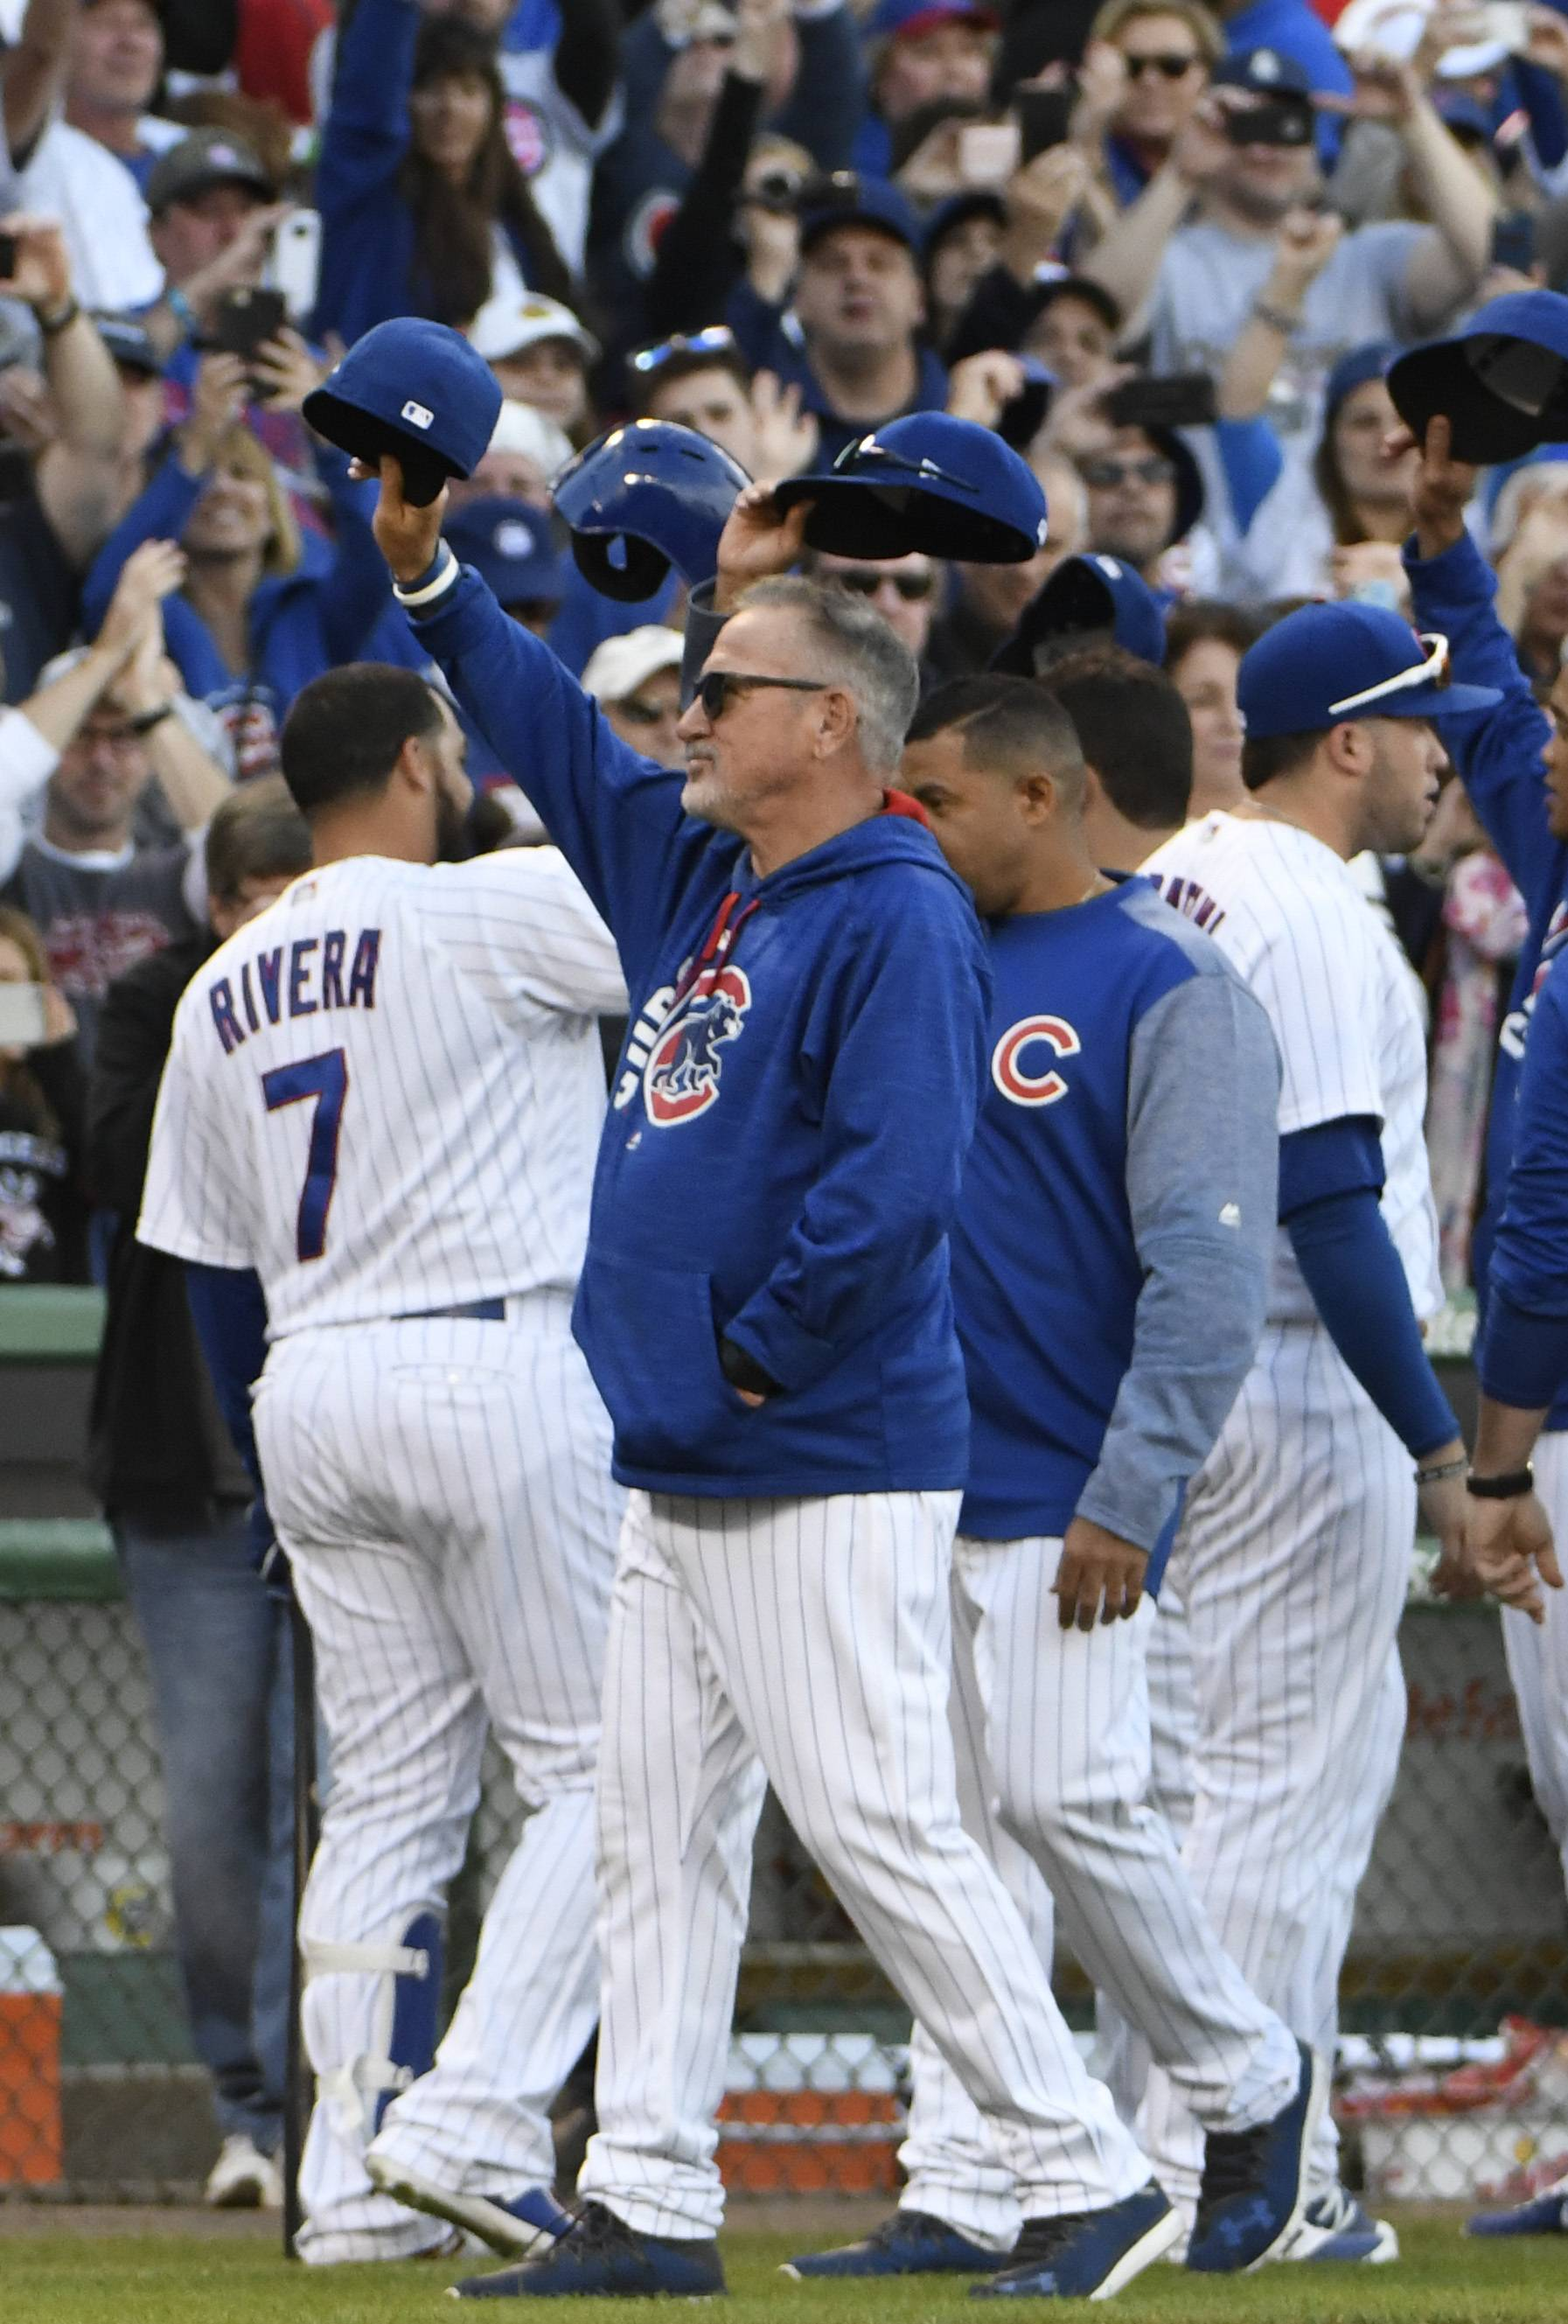 Why loose feeling might help Chicago Cubs in postseason